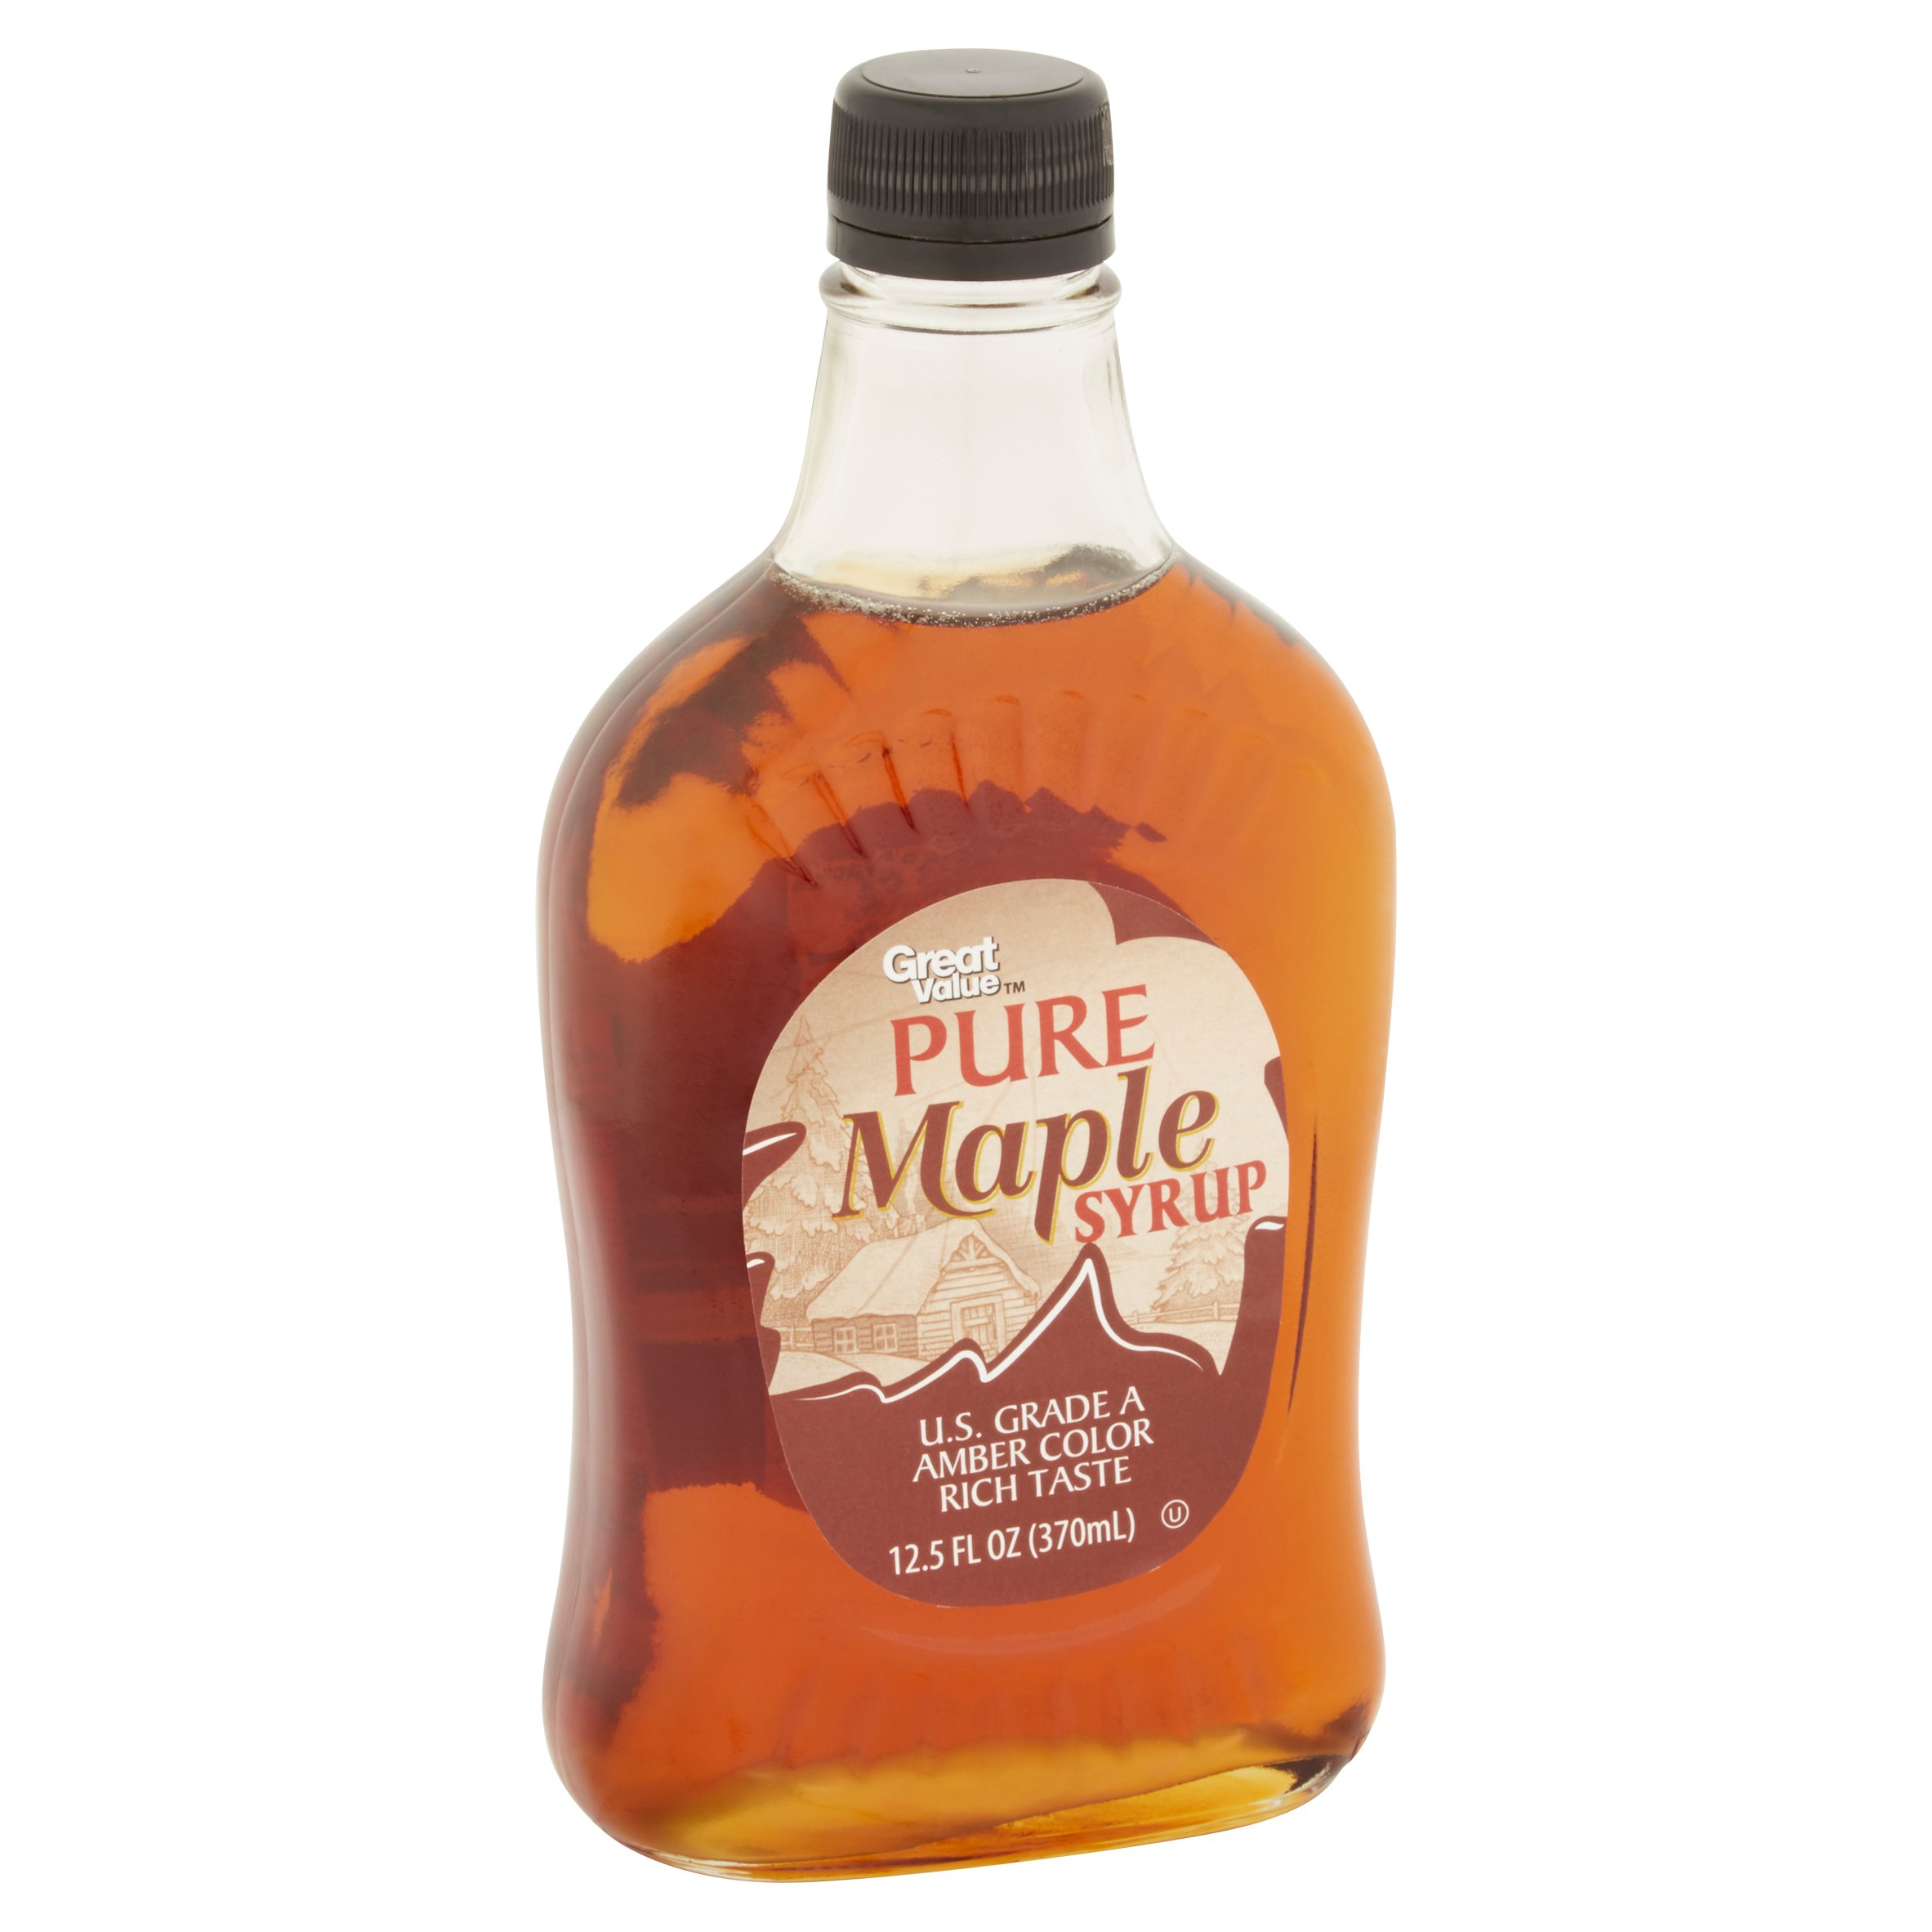 Mable syrup